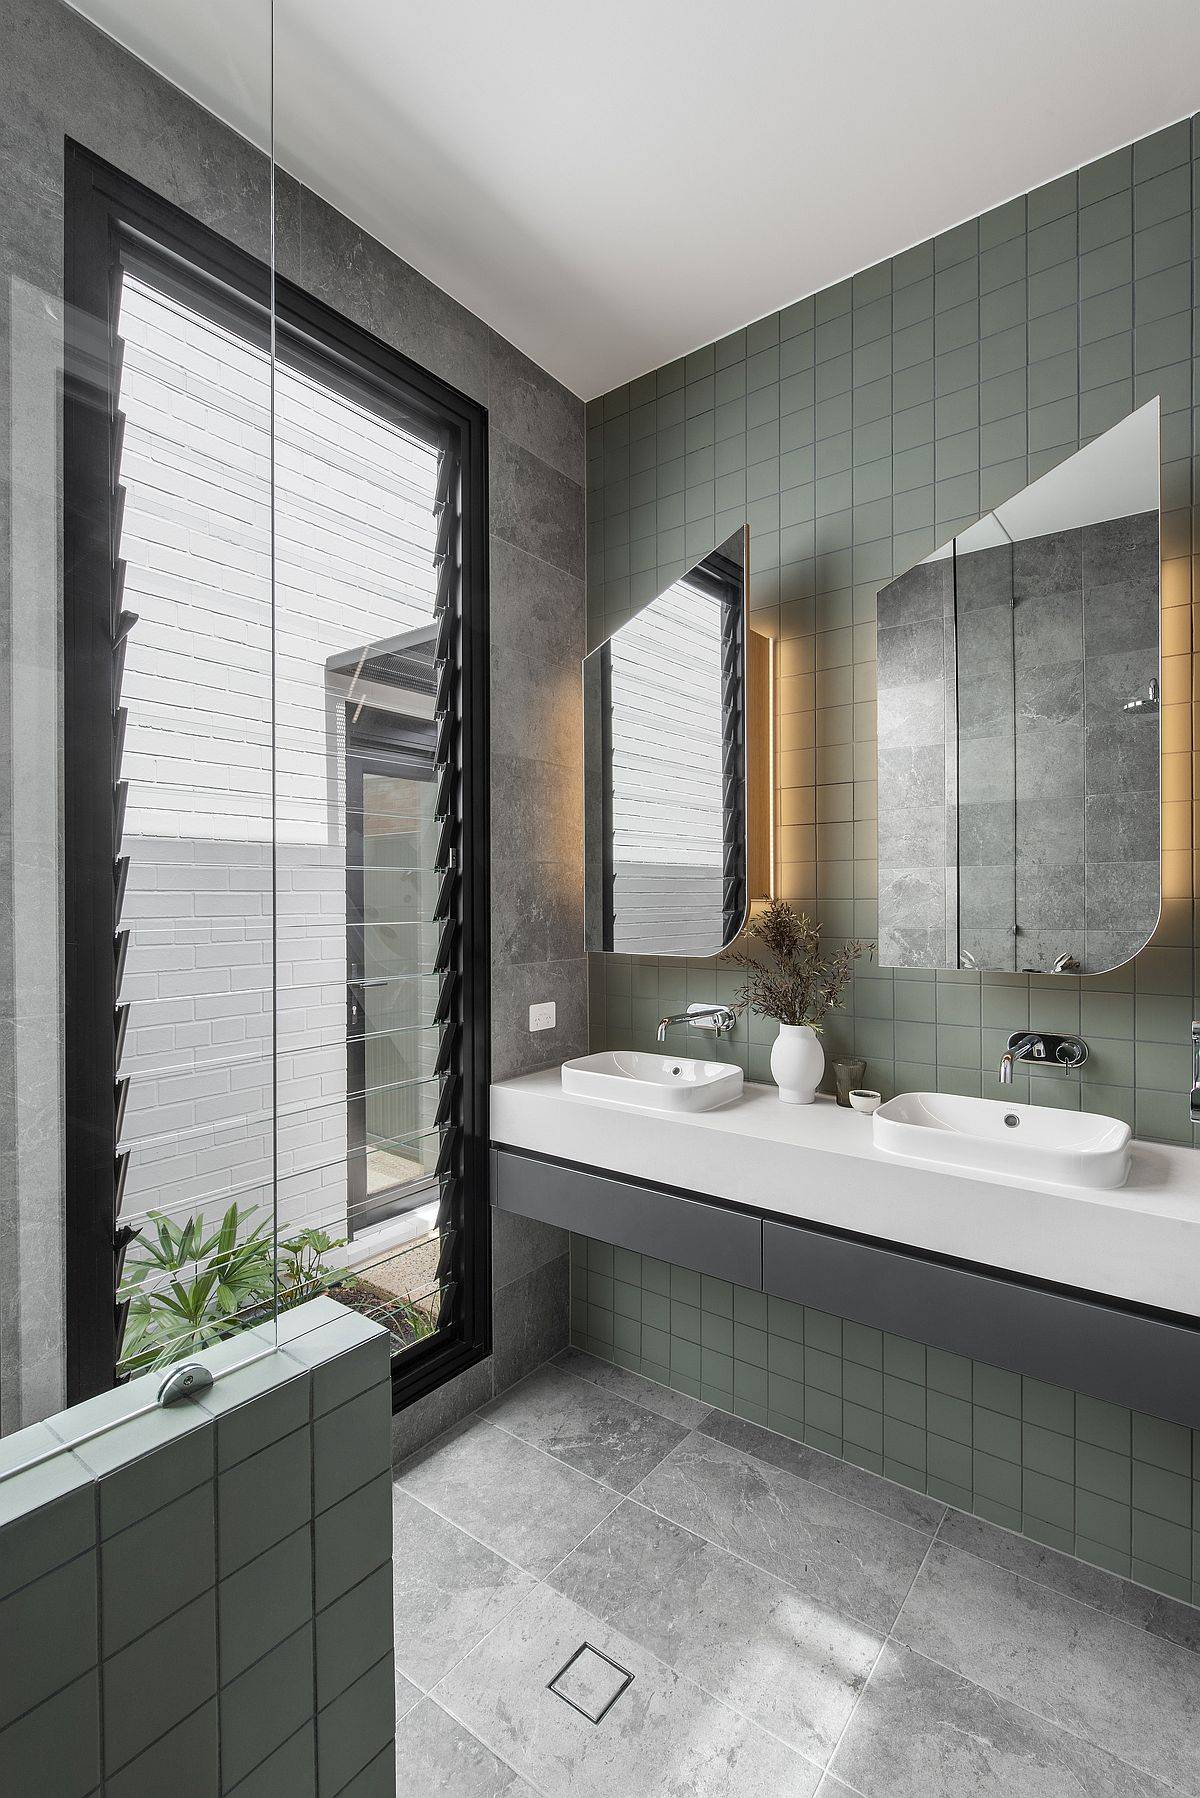 Green tiles for the contemporary bathroom with ample natural light